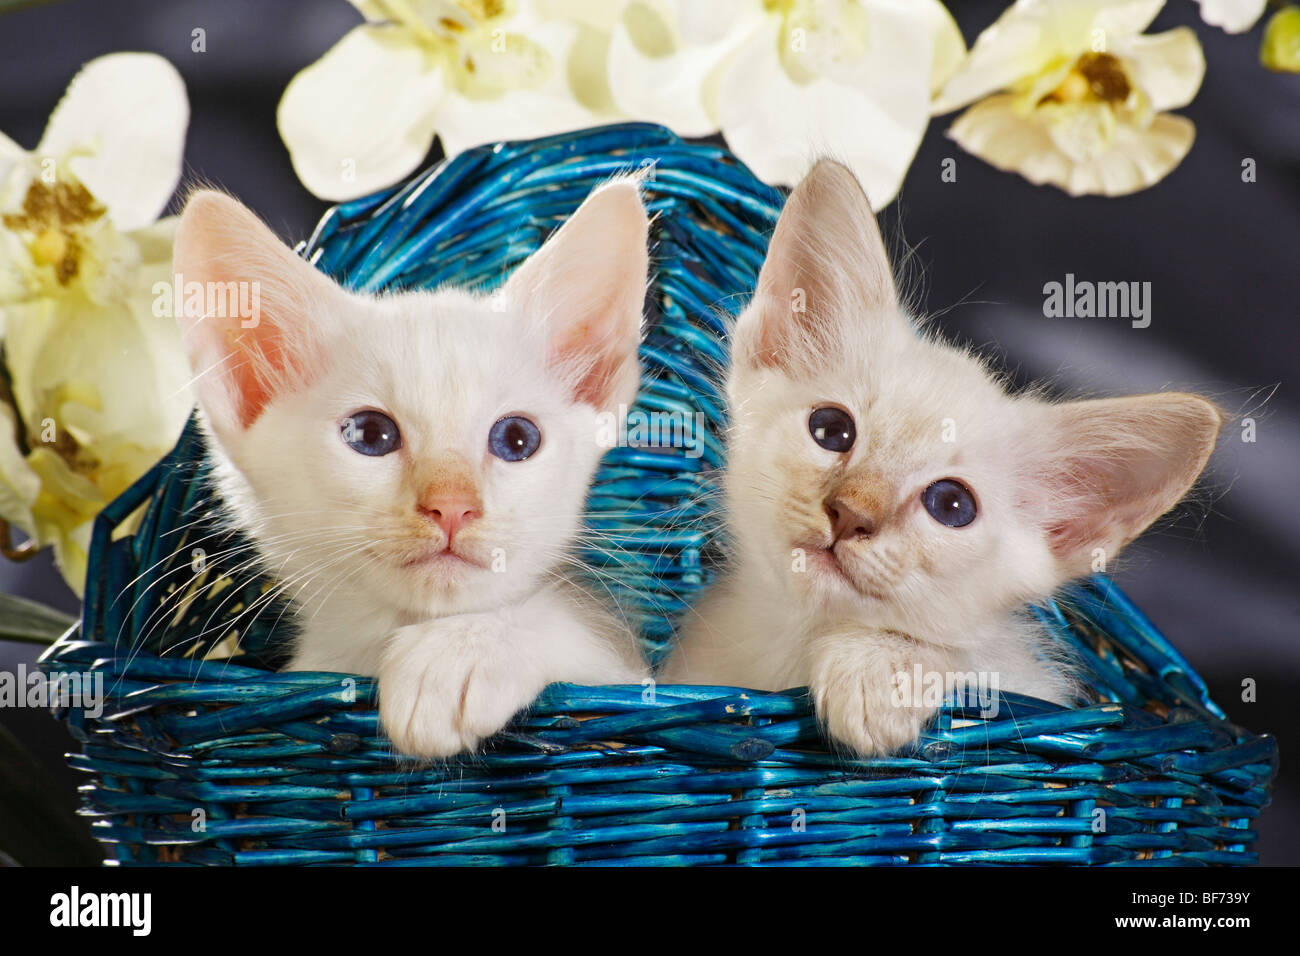 Balinese And Siamese Cat Kittens In Basket Stock Photo 26586503